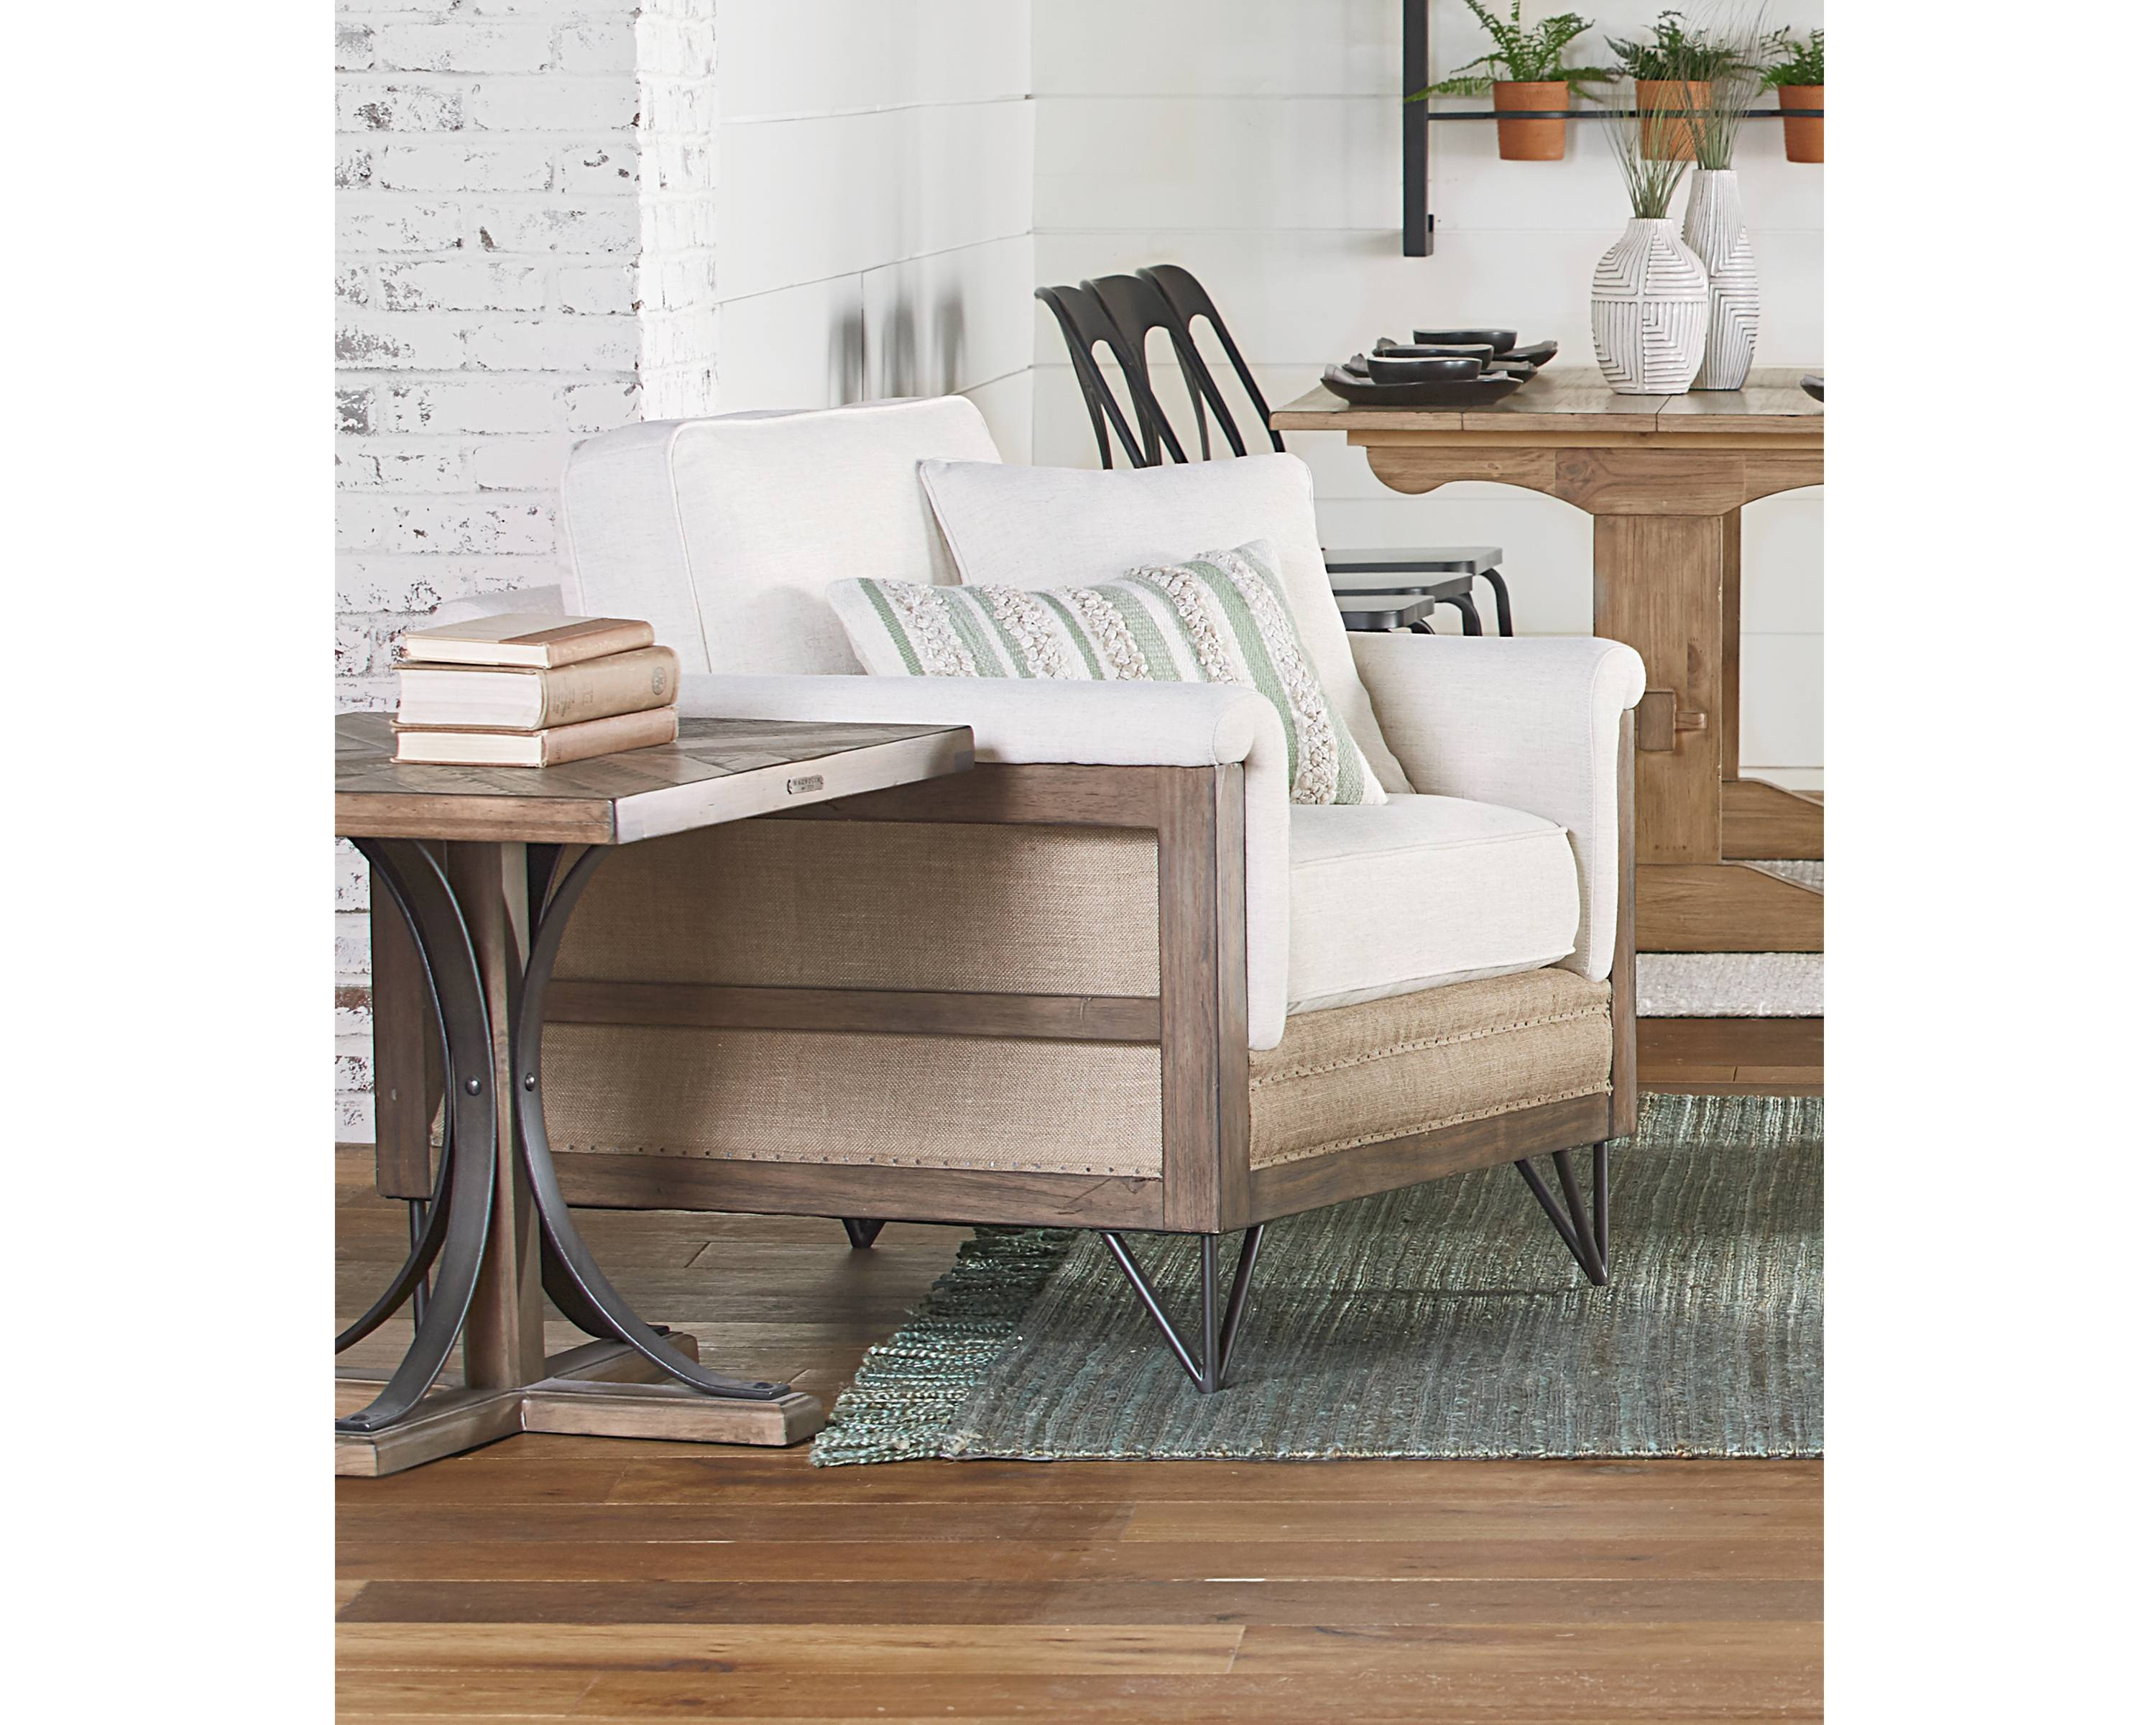 Paradigm Chair – Magnolia Home For Magnolia Home Paradigm Sofa Chairs By Joanna Gaines (View 8 of 20)